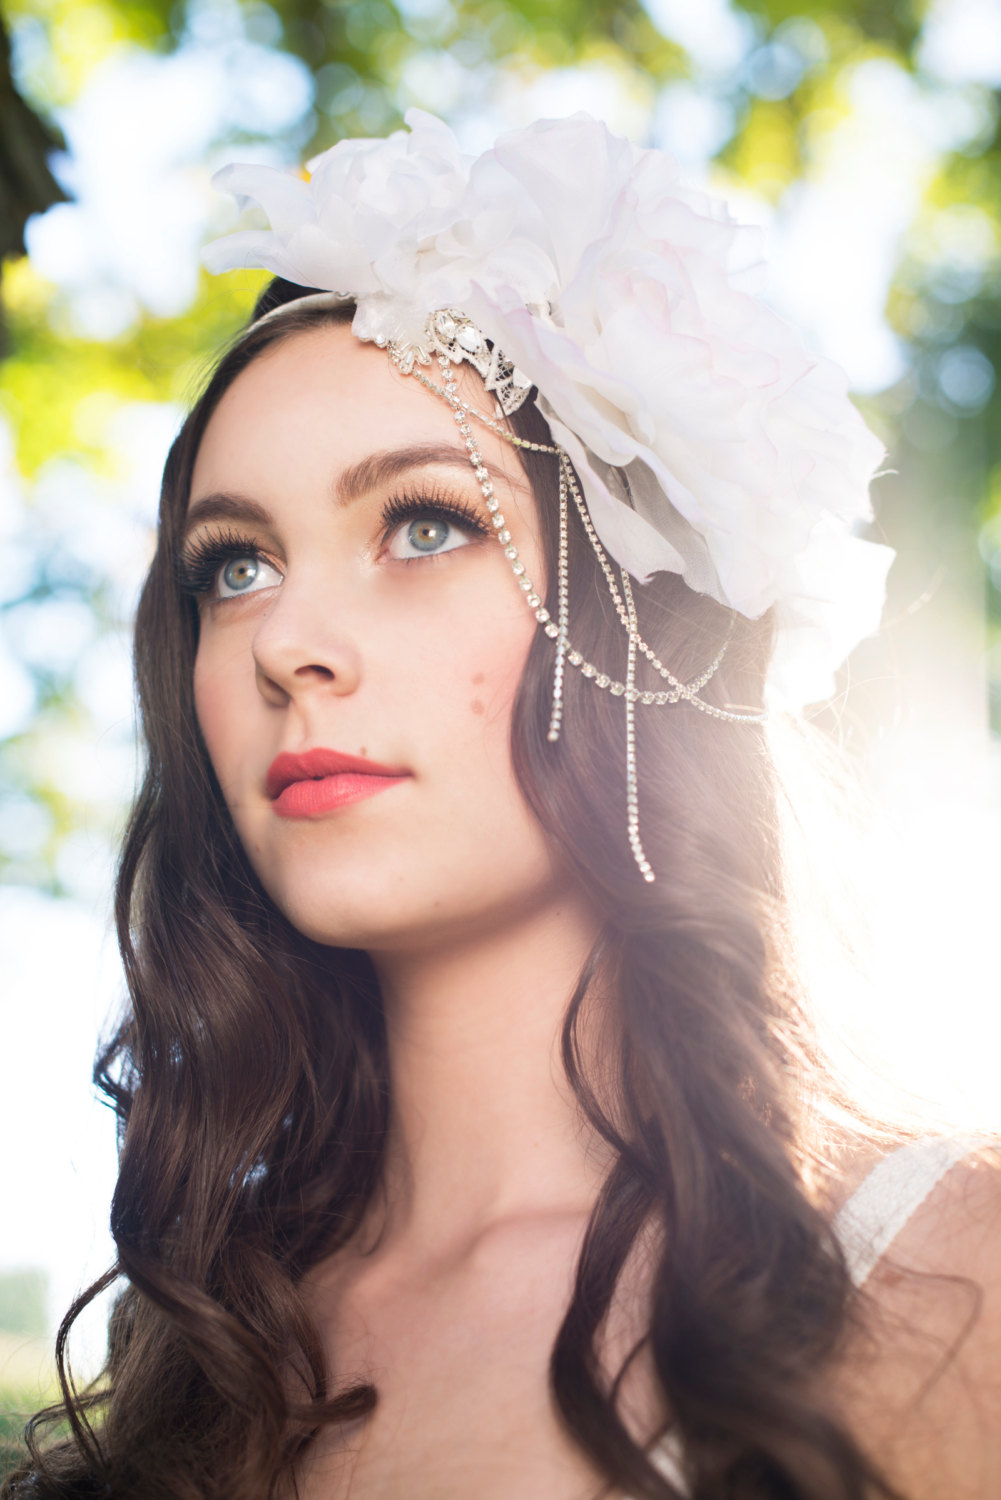 amanda floral crown gatsby inspired